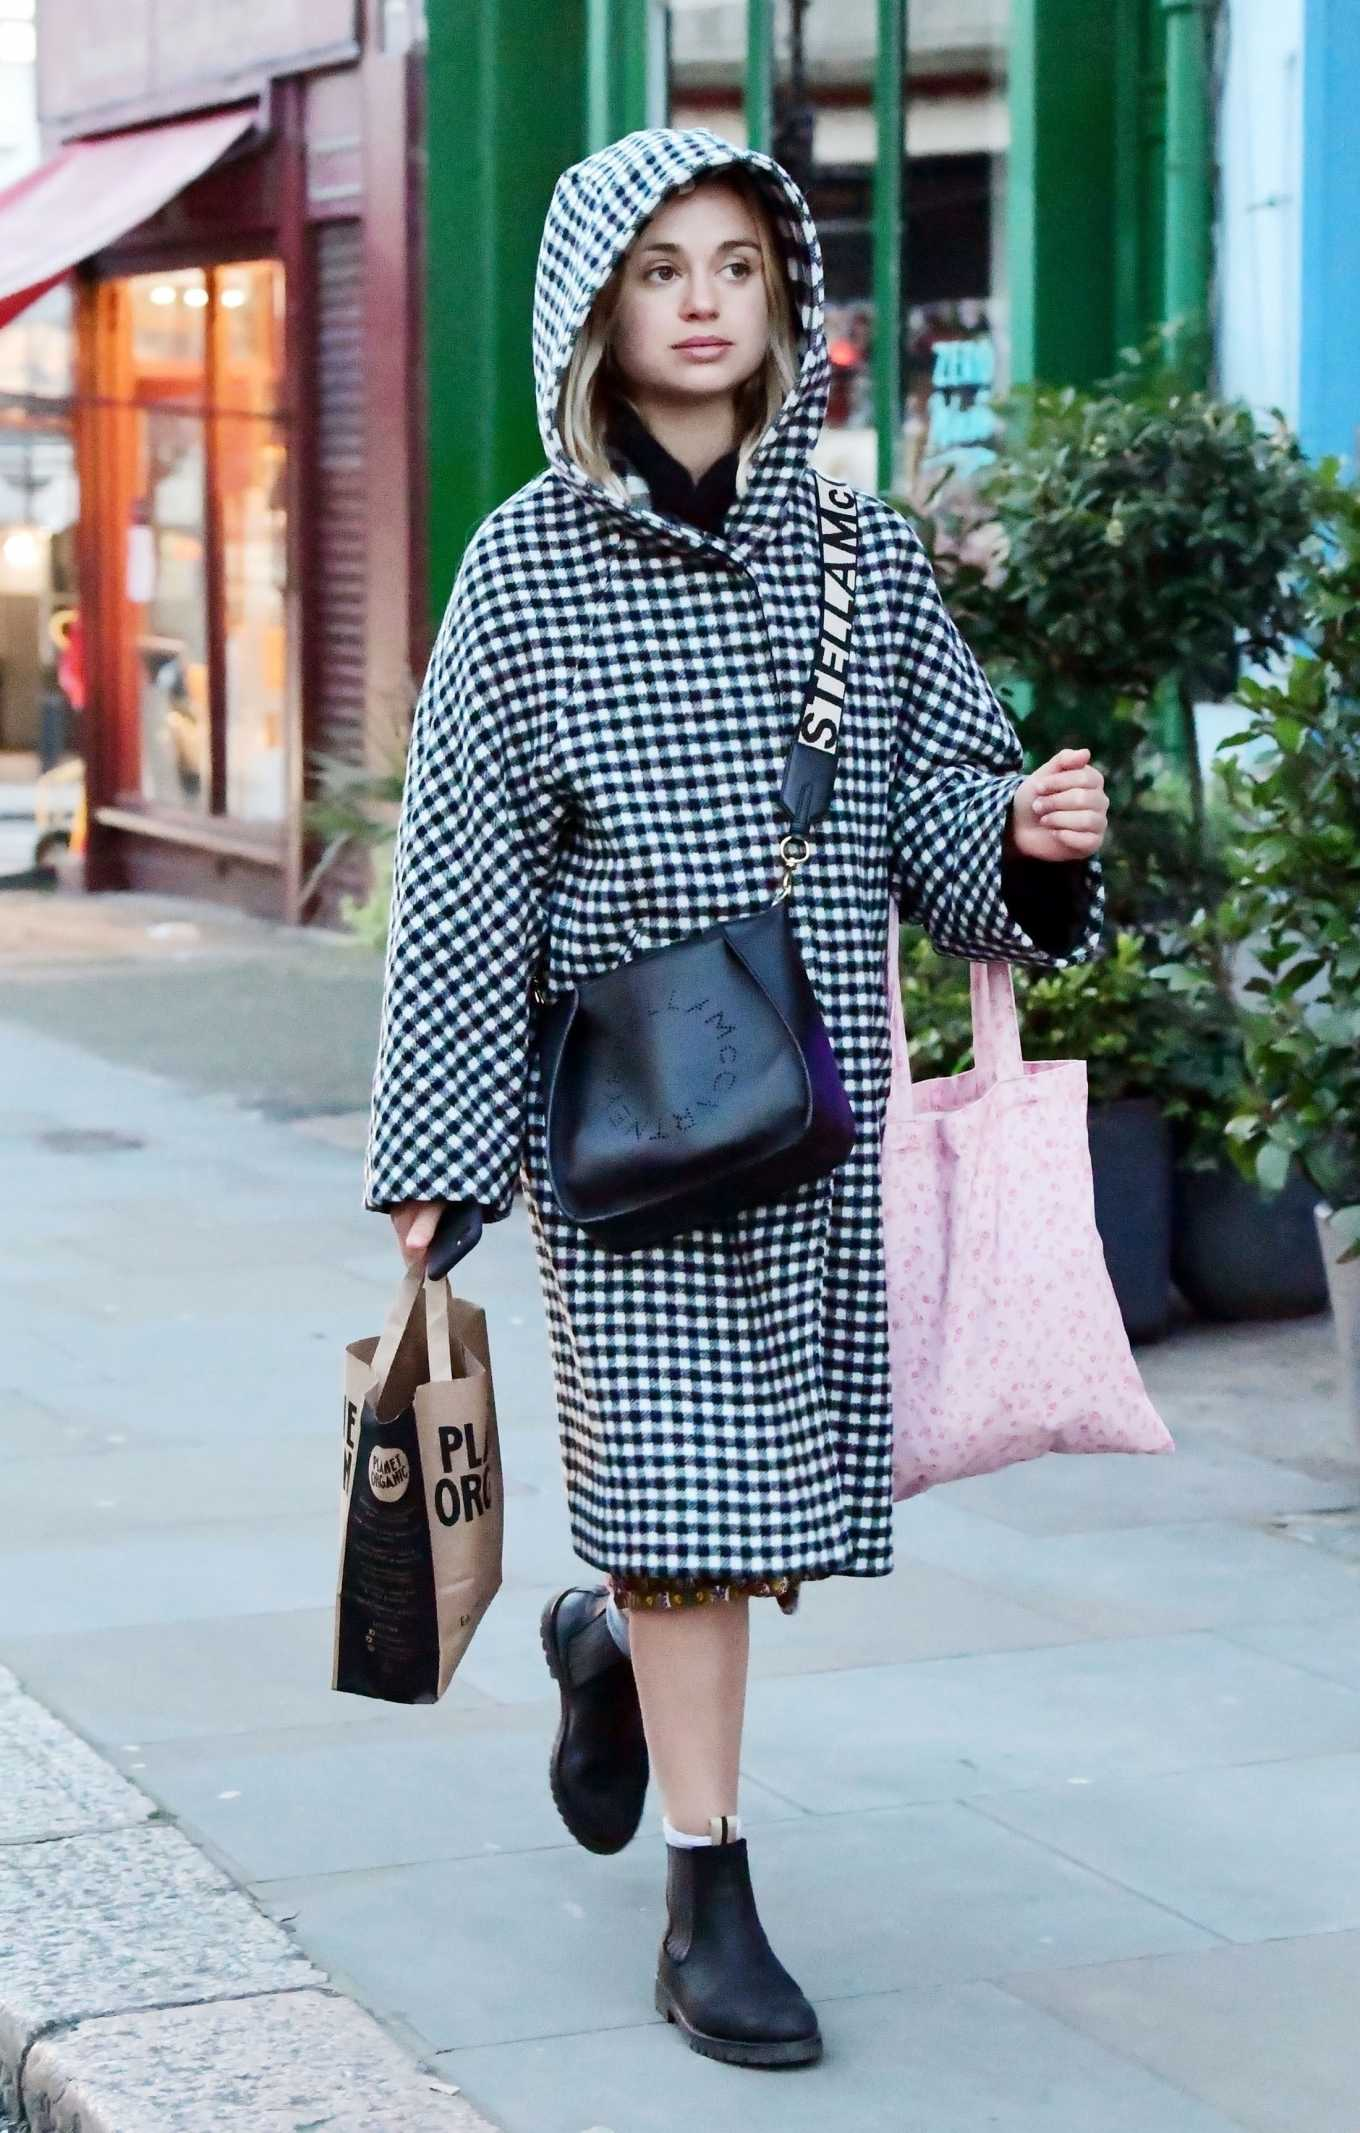 Amelia Windsor 2020 : Amelia Windsor – Looks stylis while out in the trendy area of Notting Hill-26